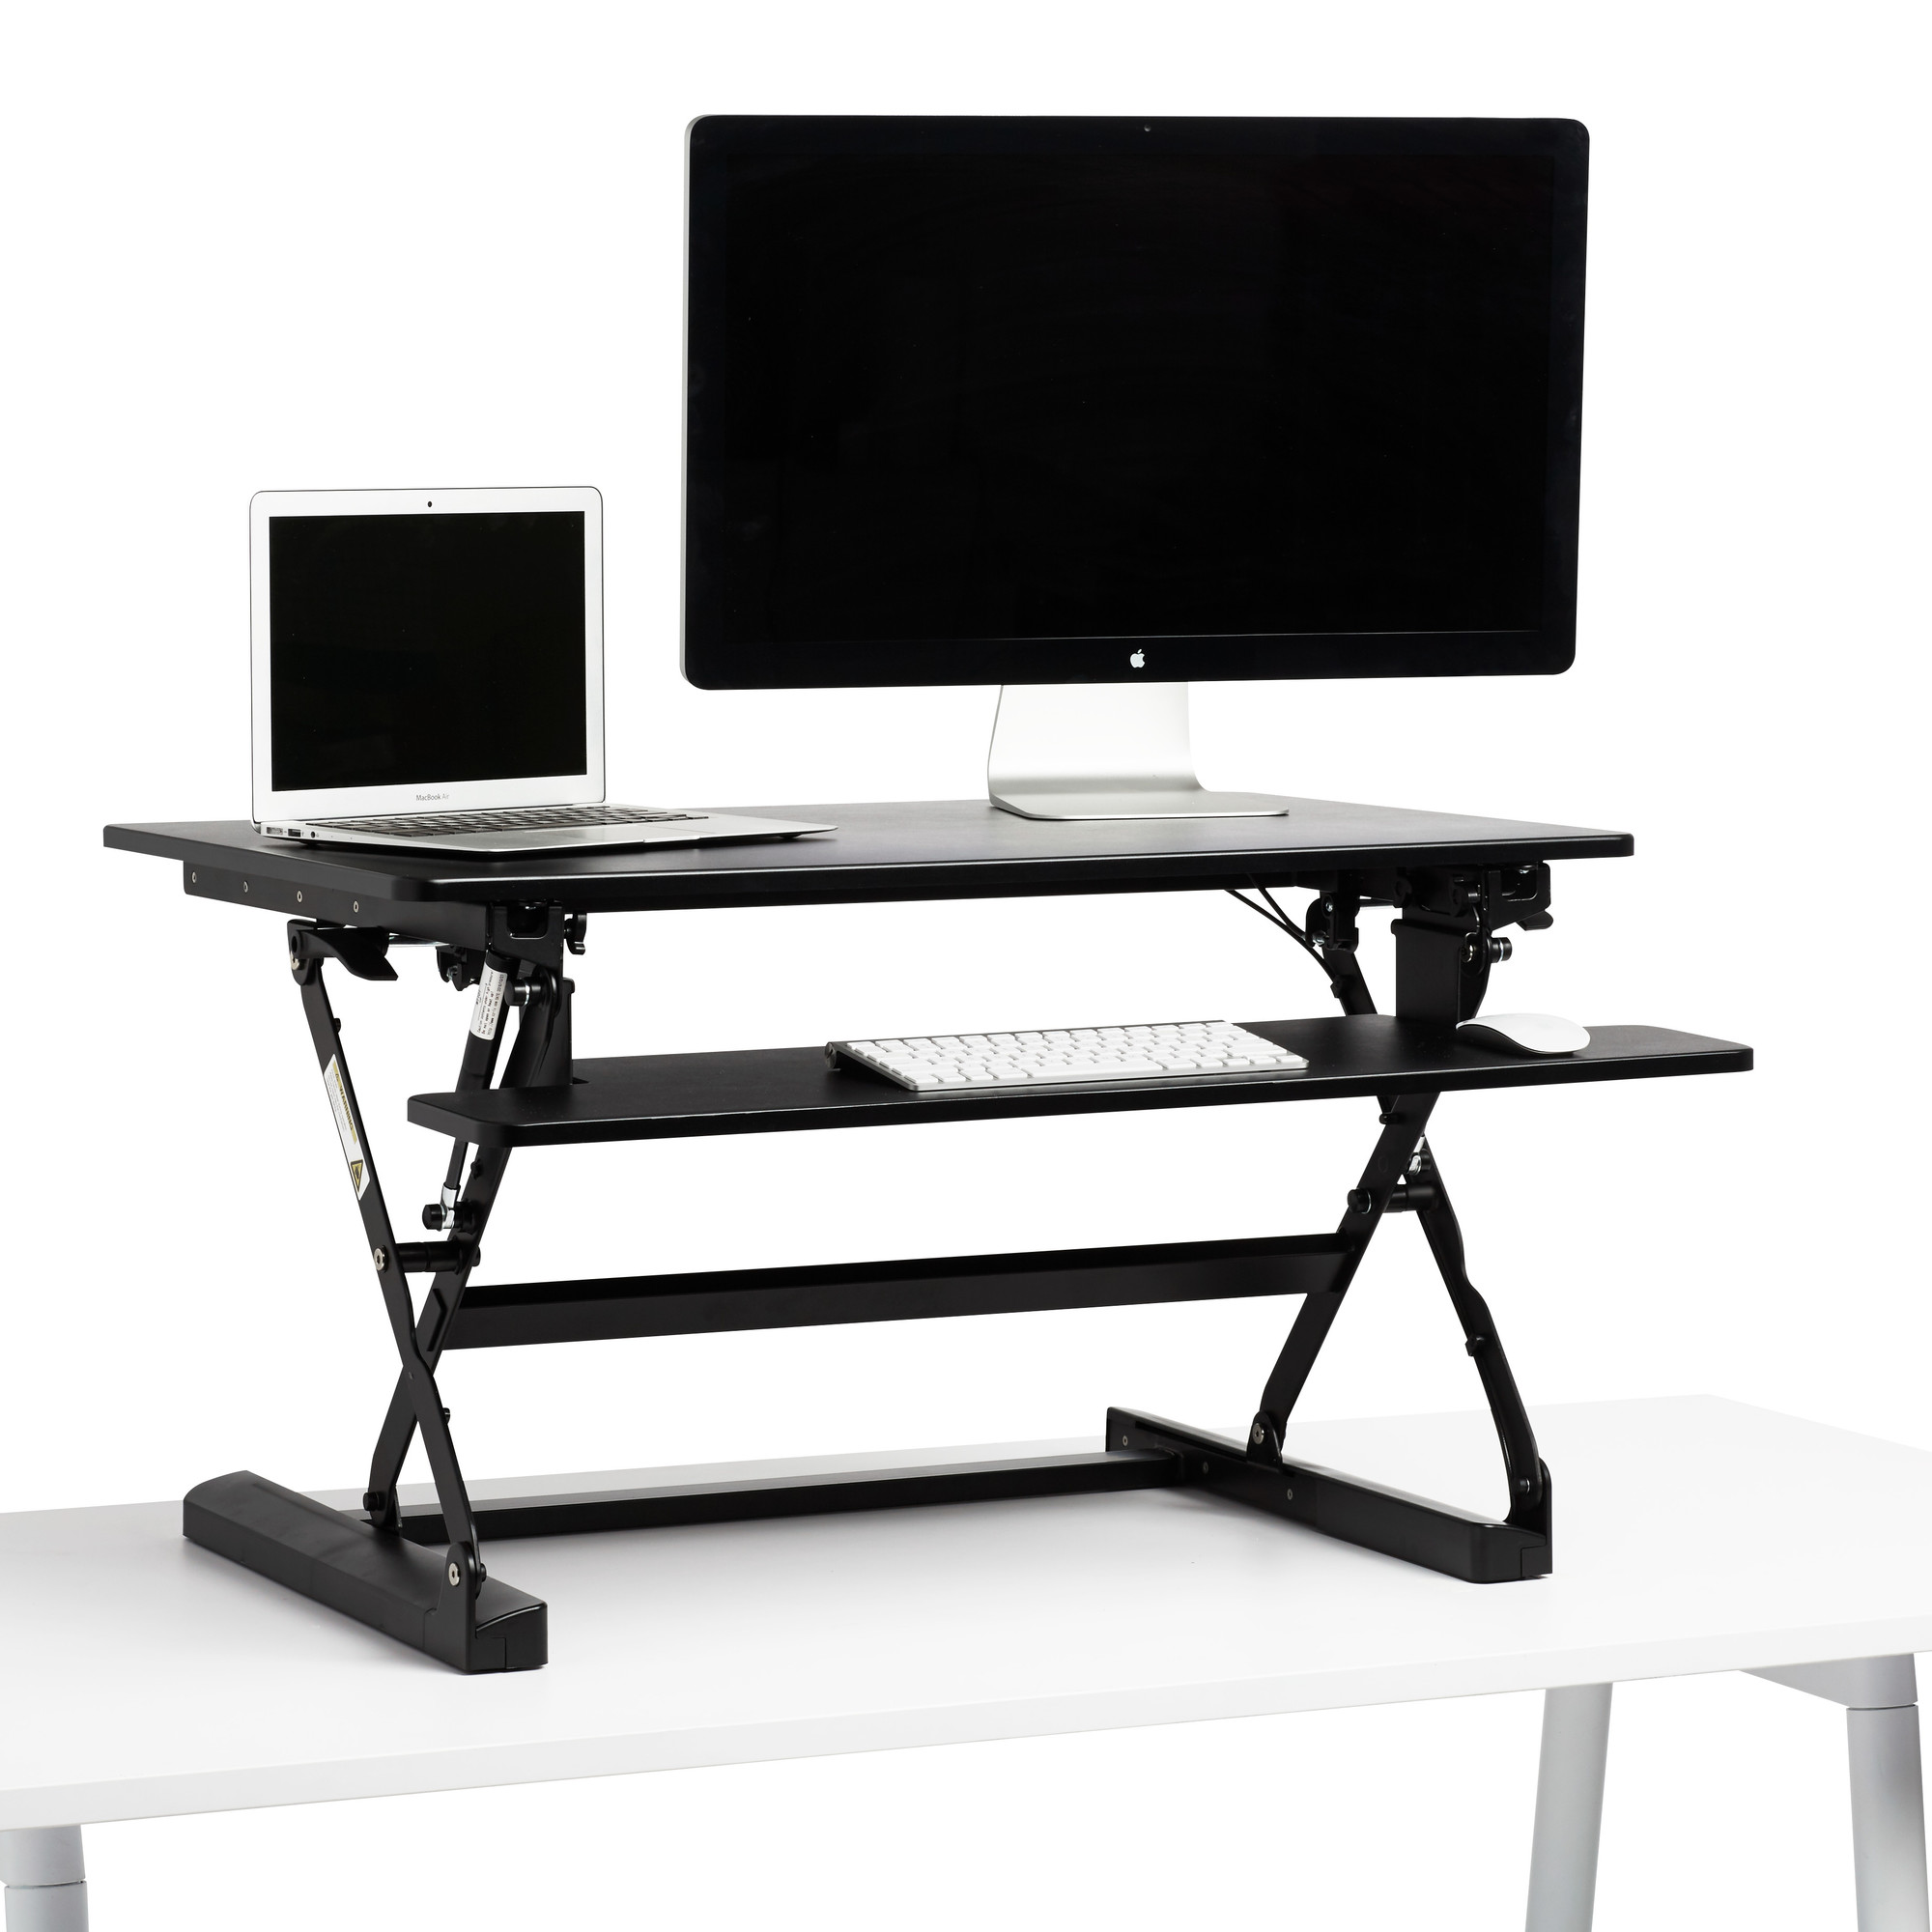 black medium peak adjustable height standing desk riser rh poppin com adjustable height standing desk reviews adjustable height standing desk riser